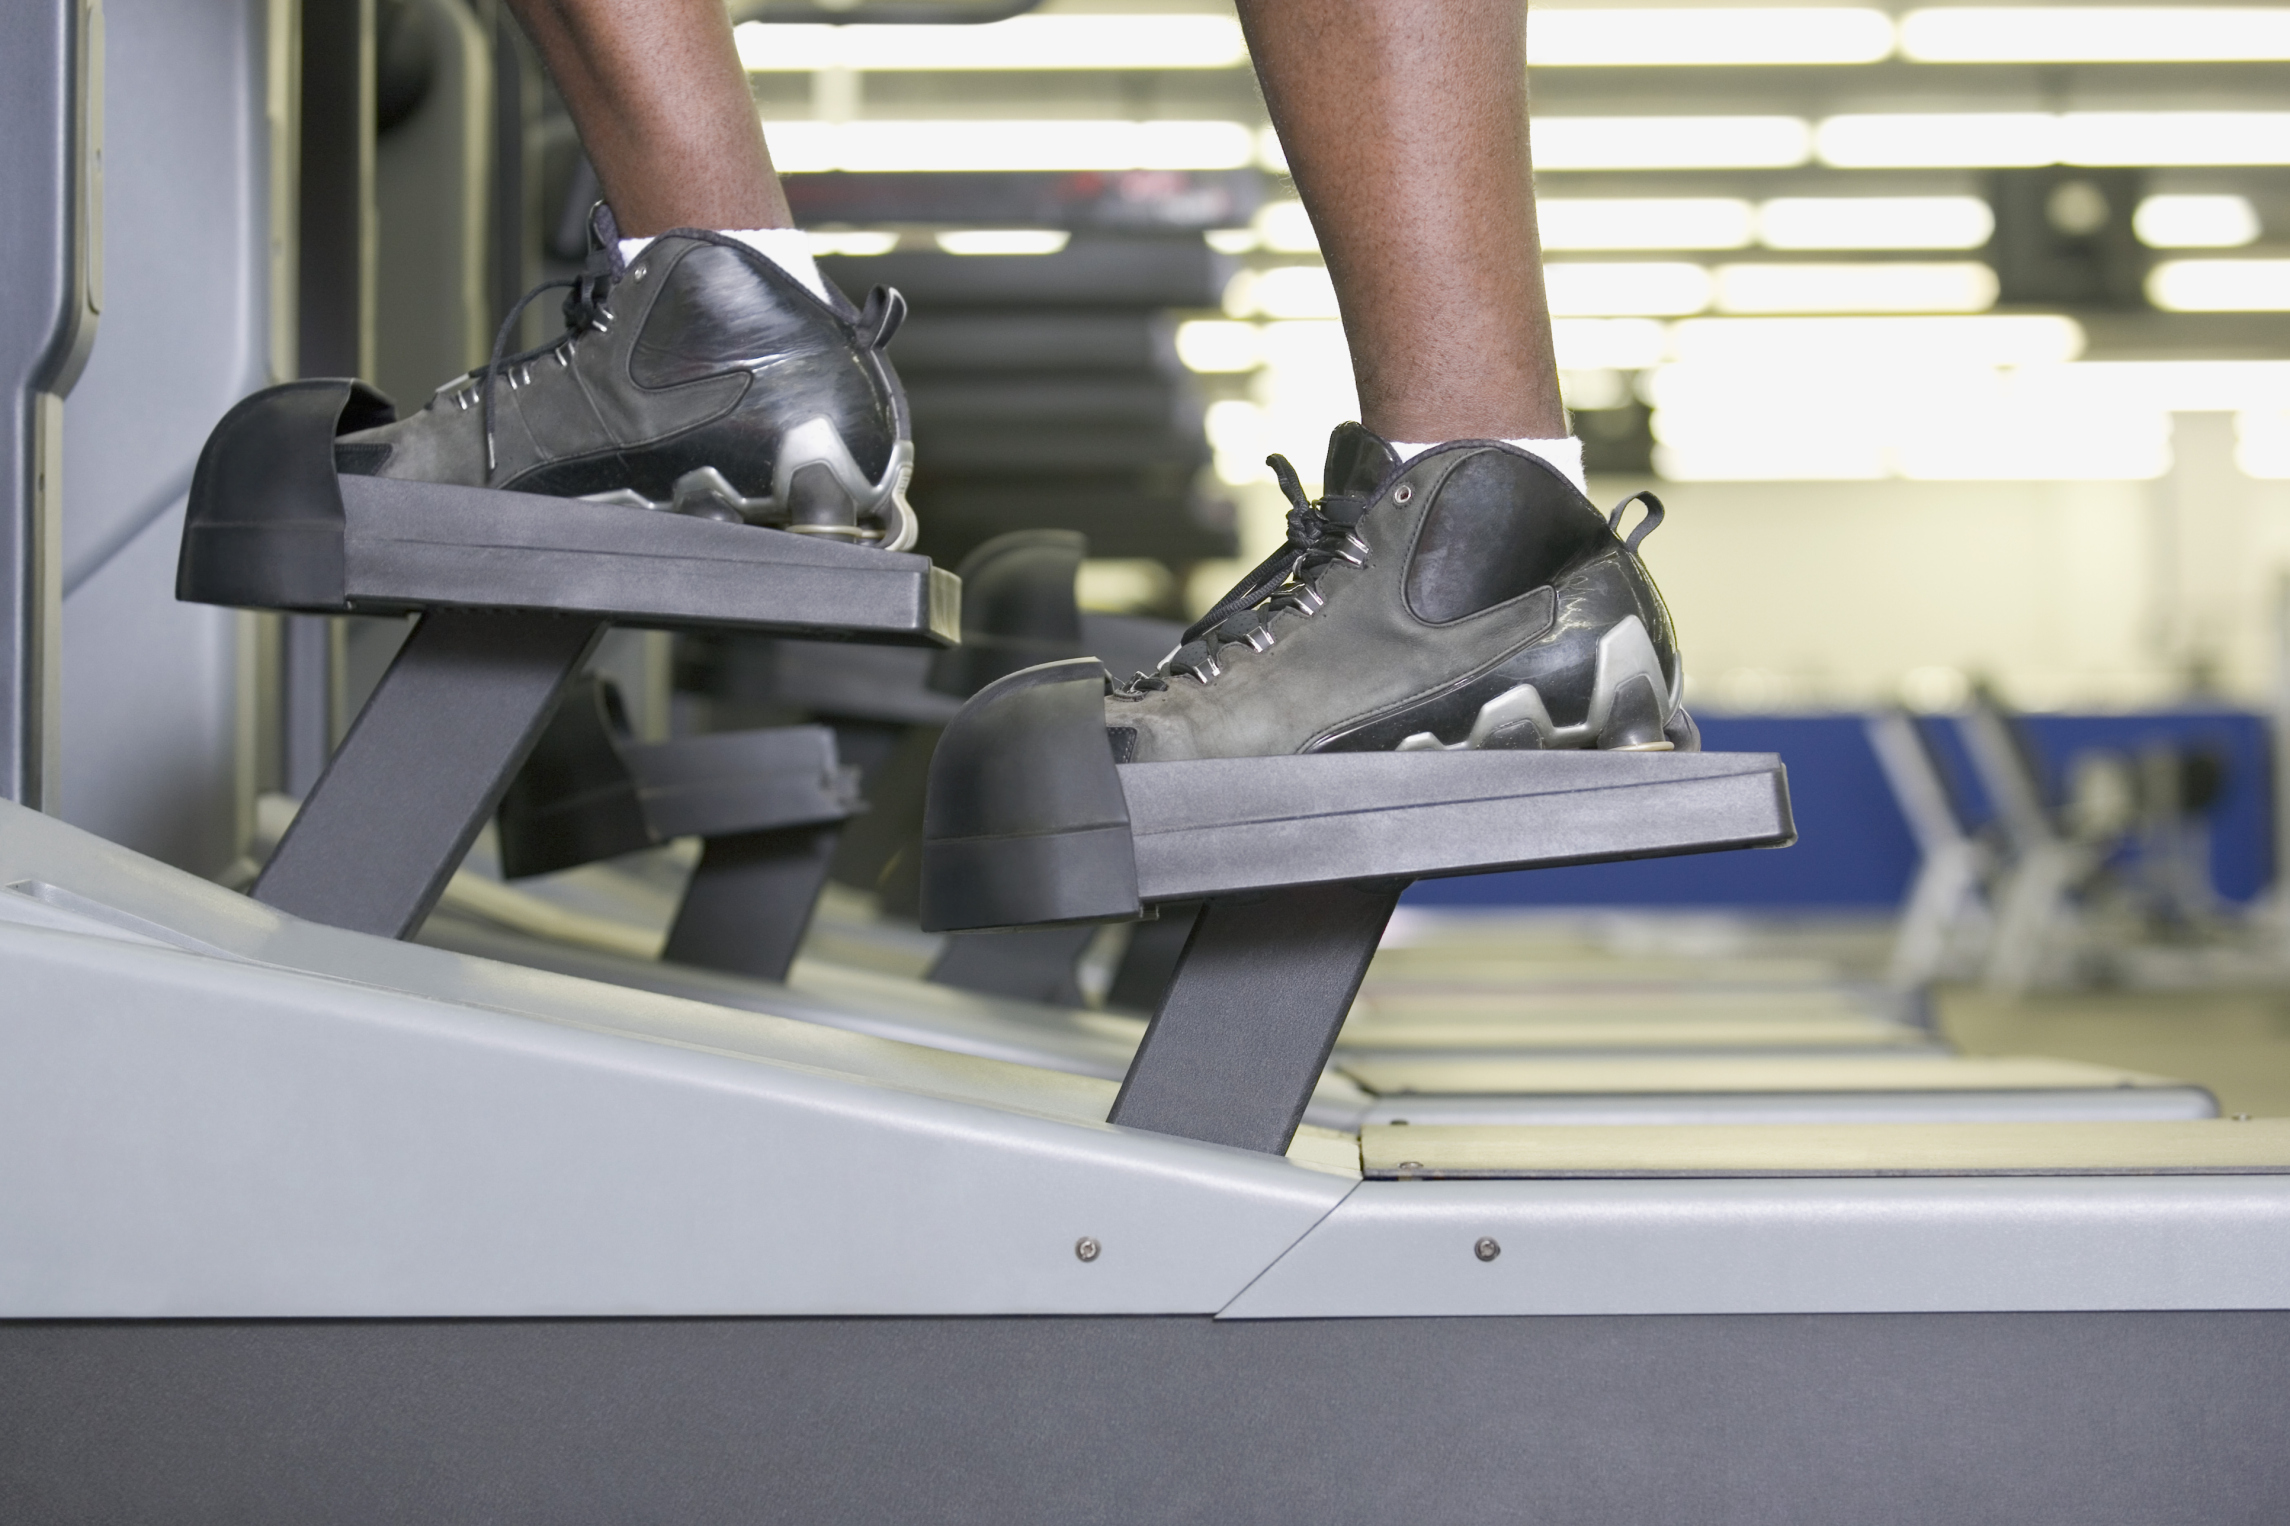 You Wear to Work Out on an Elliptical